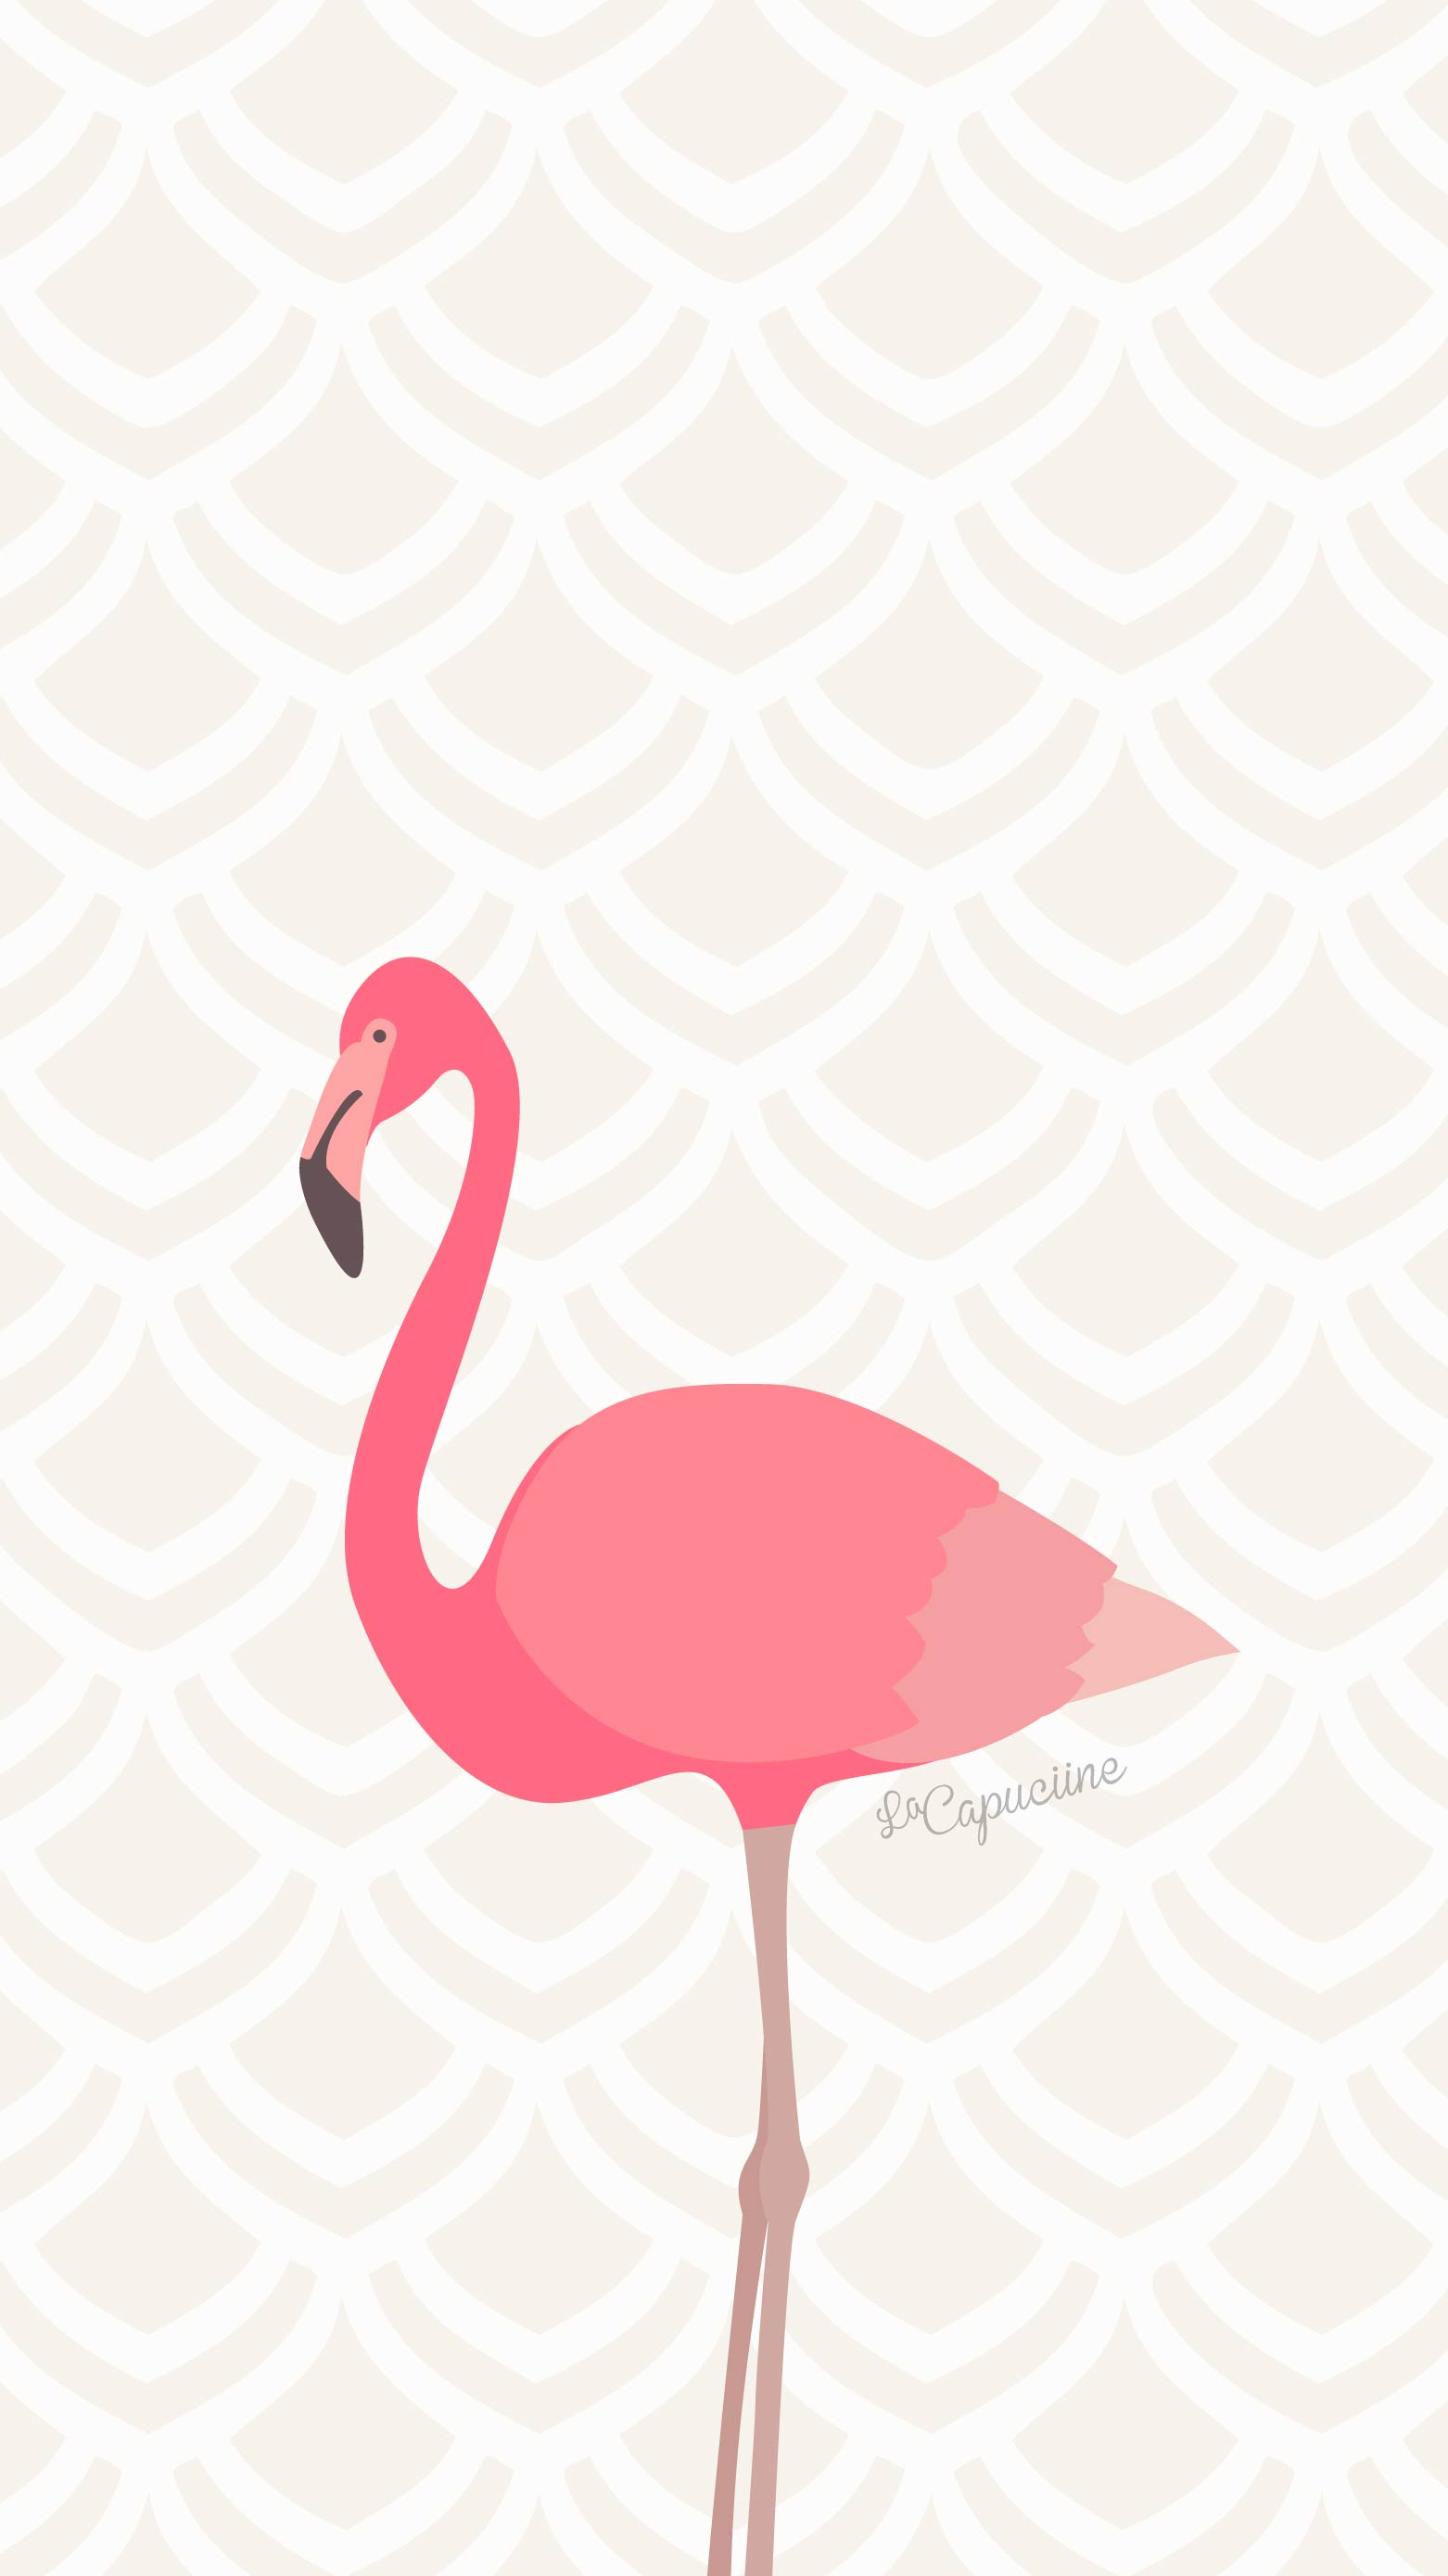 Fond d cran flamant rose la capuciine for Fond ecran rose